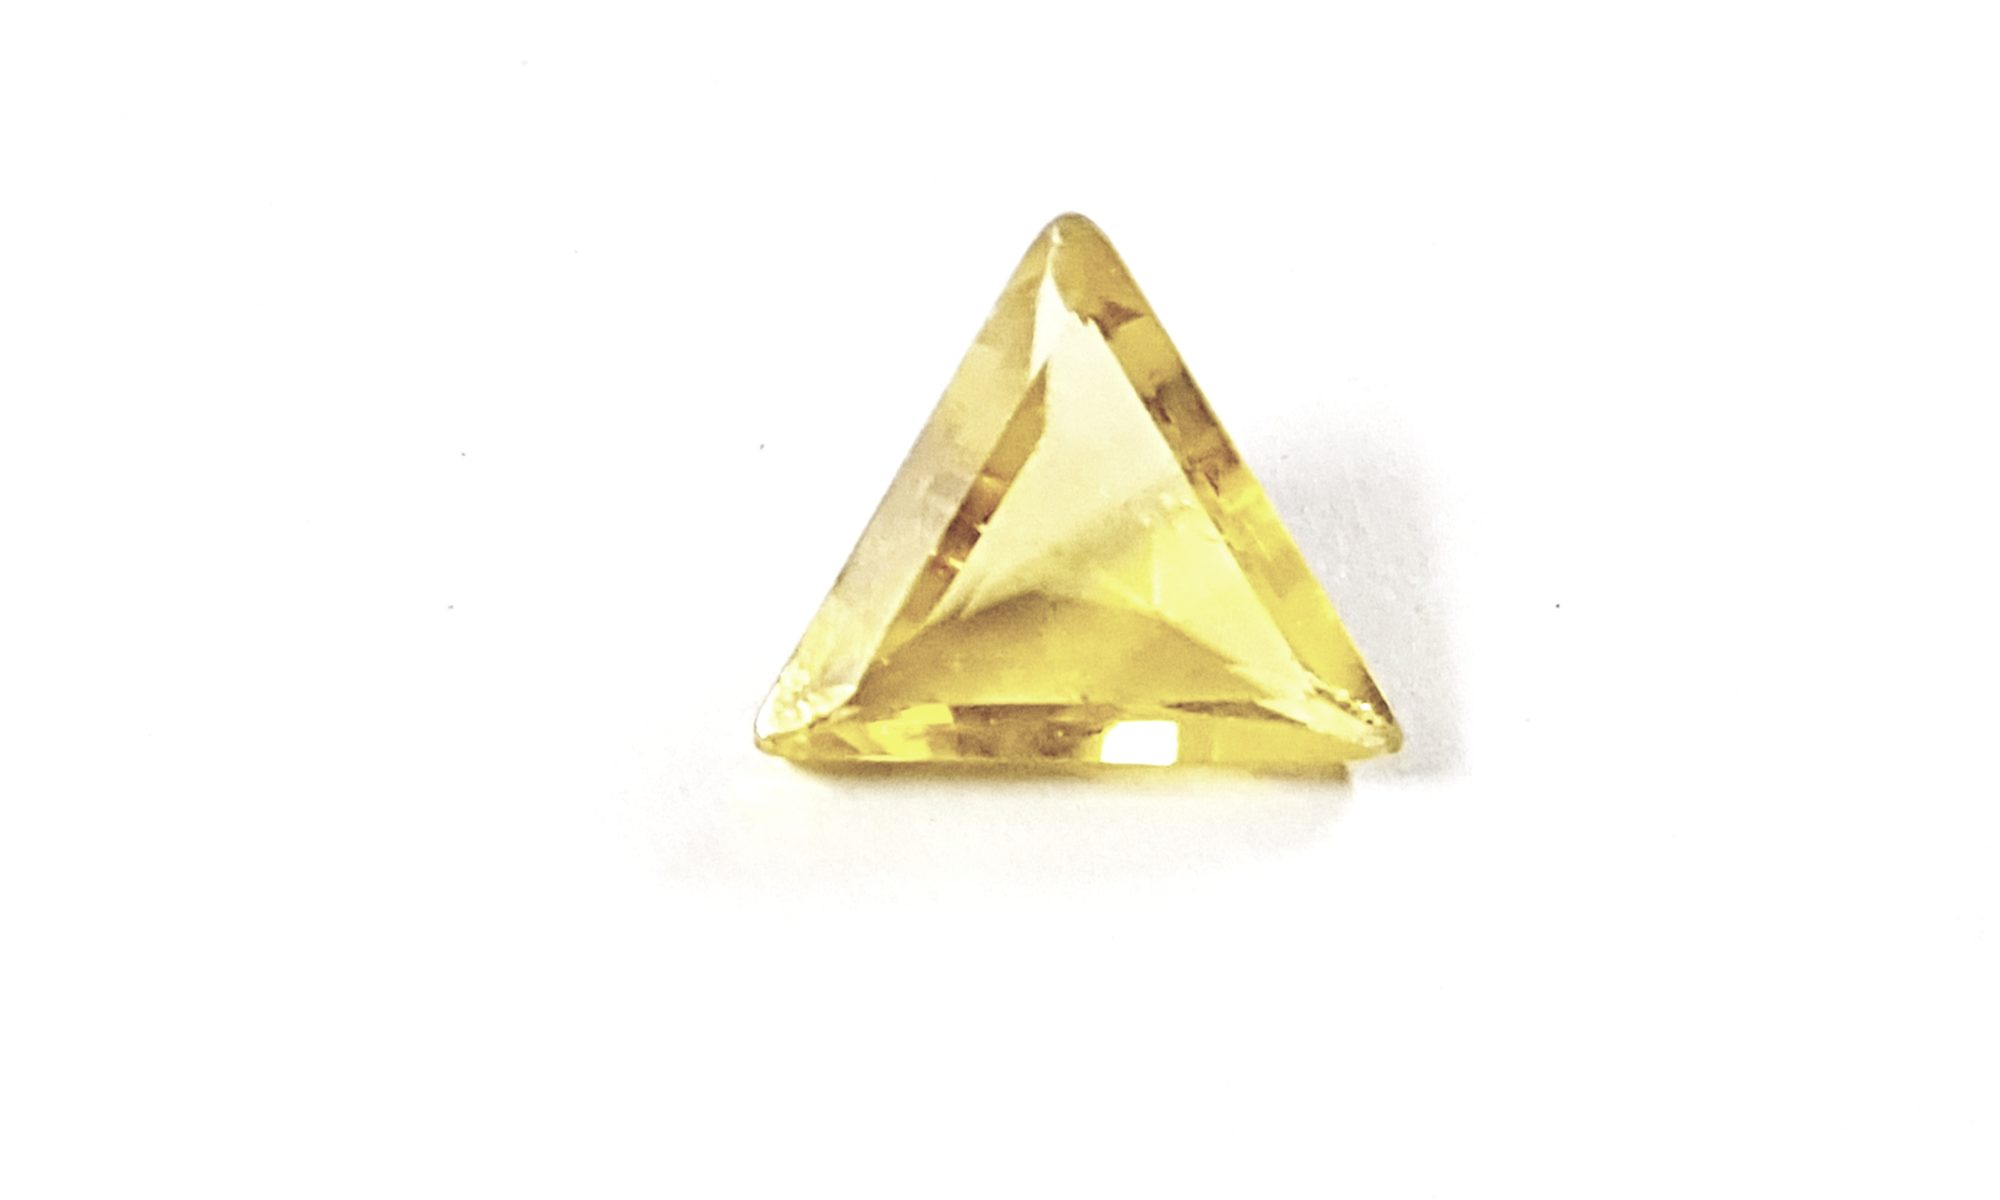 yellow flourspar or yellow florspar - rudraveda.com (19)